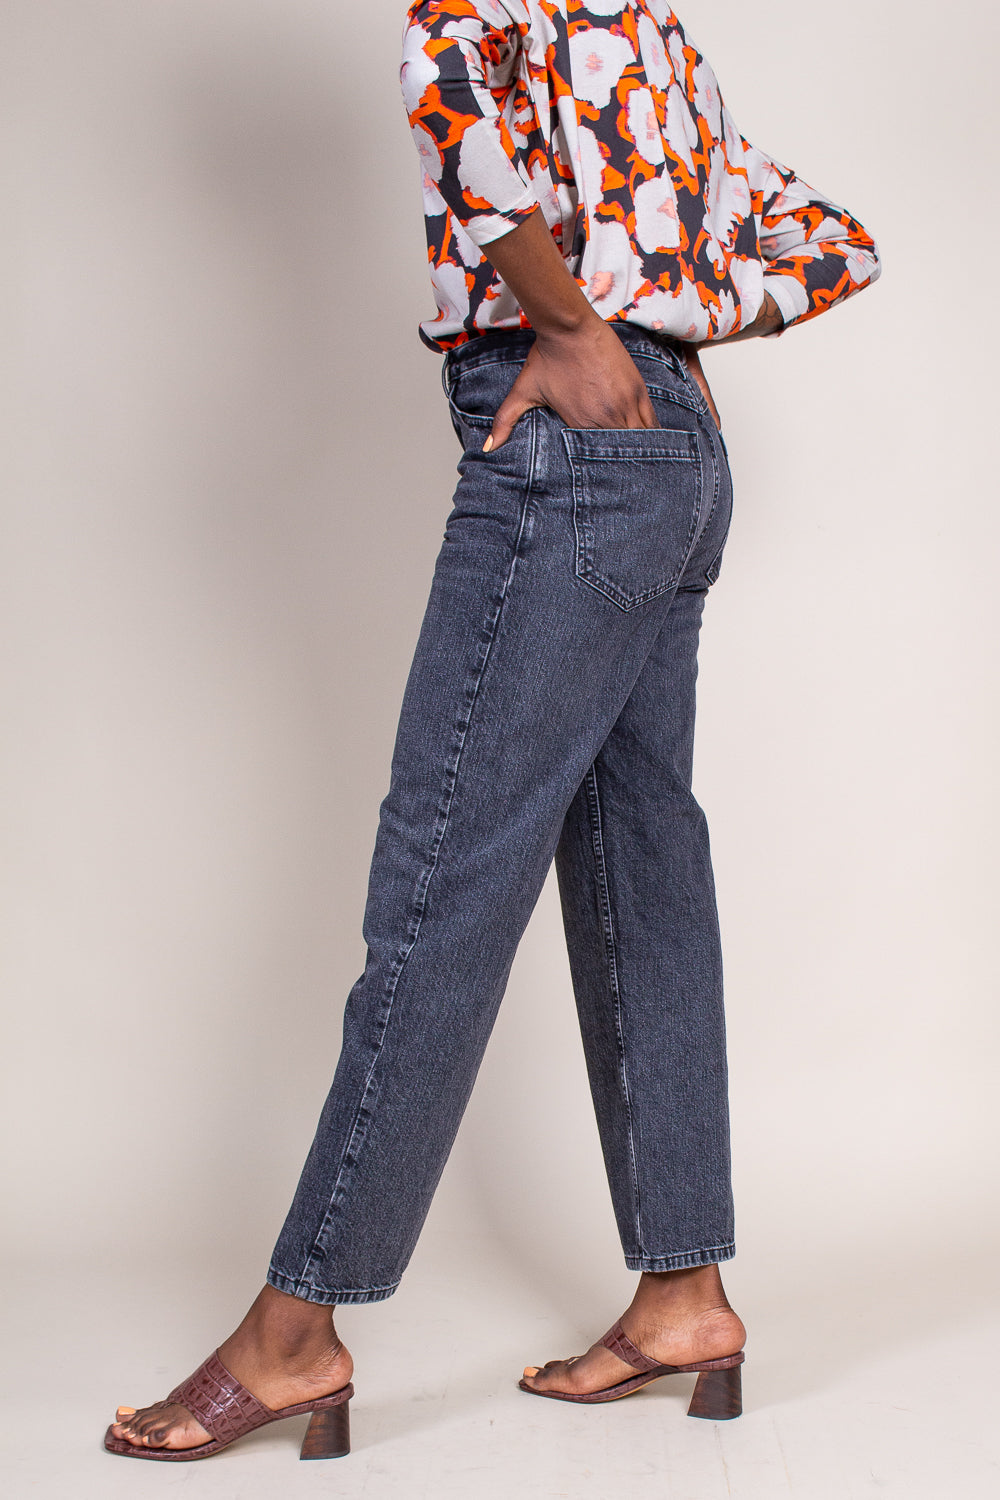 Pennon Pant in Washed Black